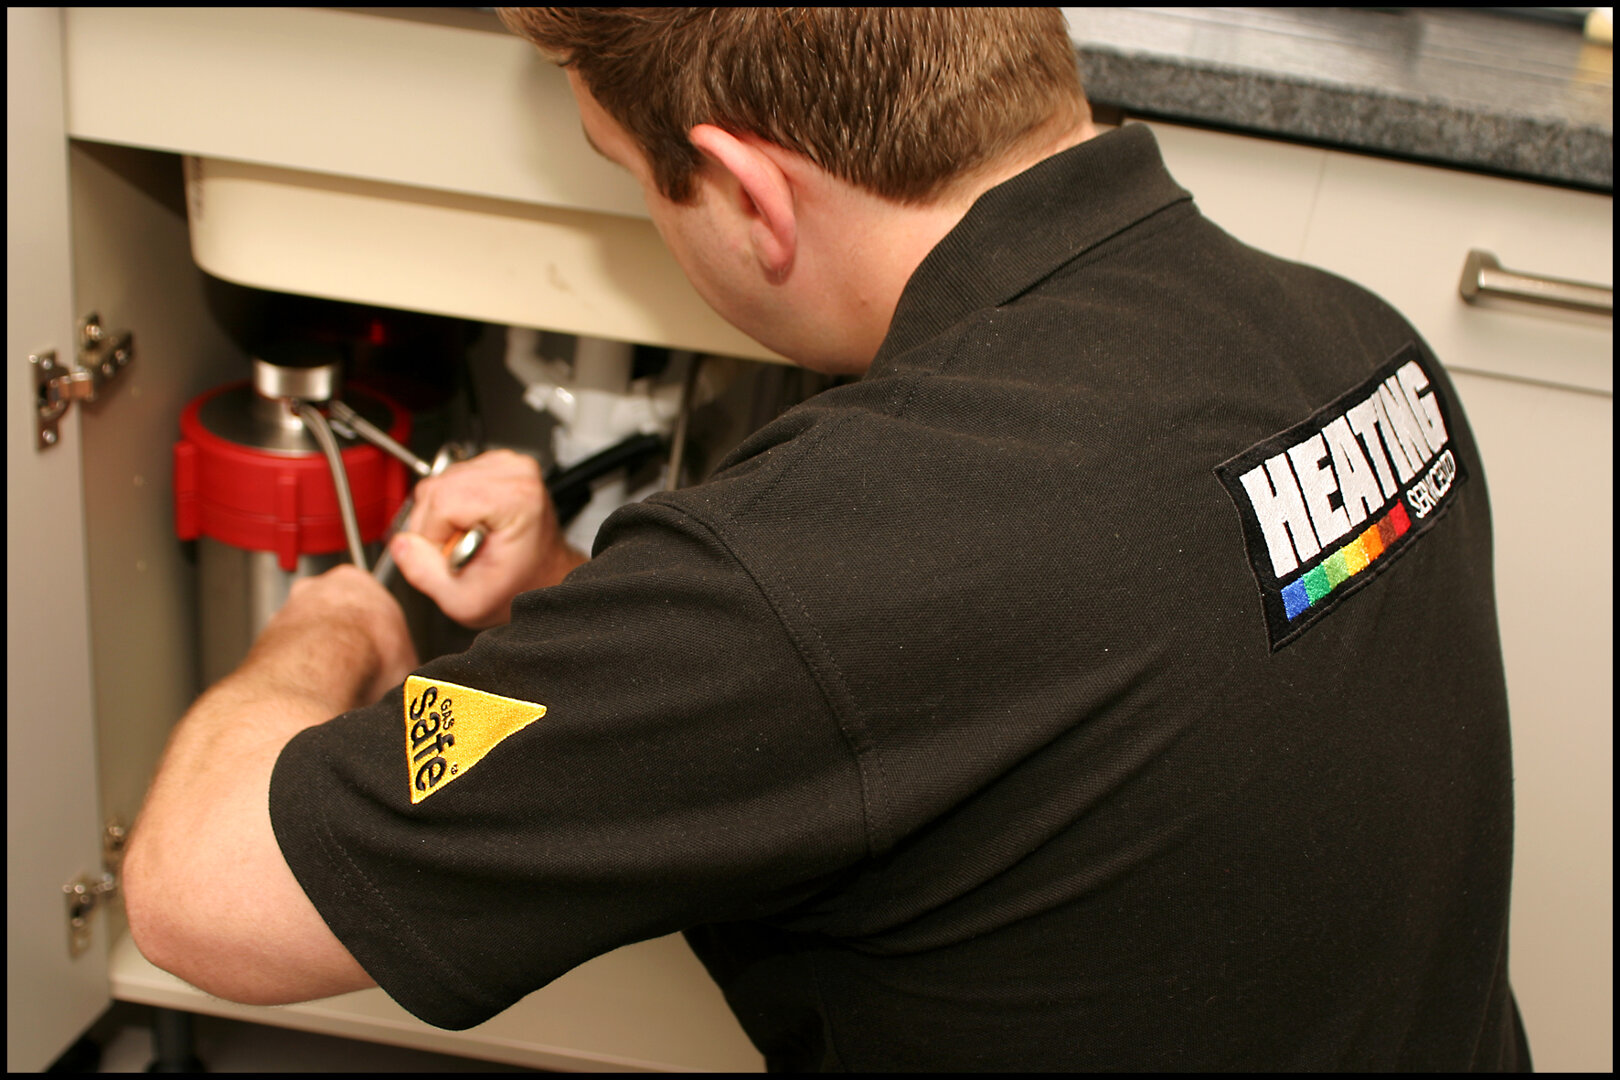 Plumbers Boiler Installation Service and Repairs and Bathroom Design and Installation by Heating Services Ltd in Edenbridge (3)